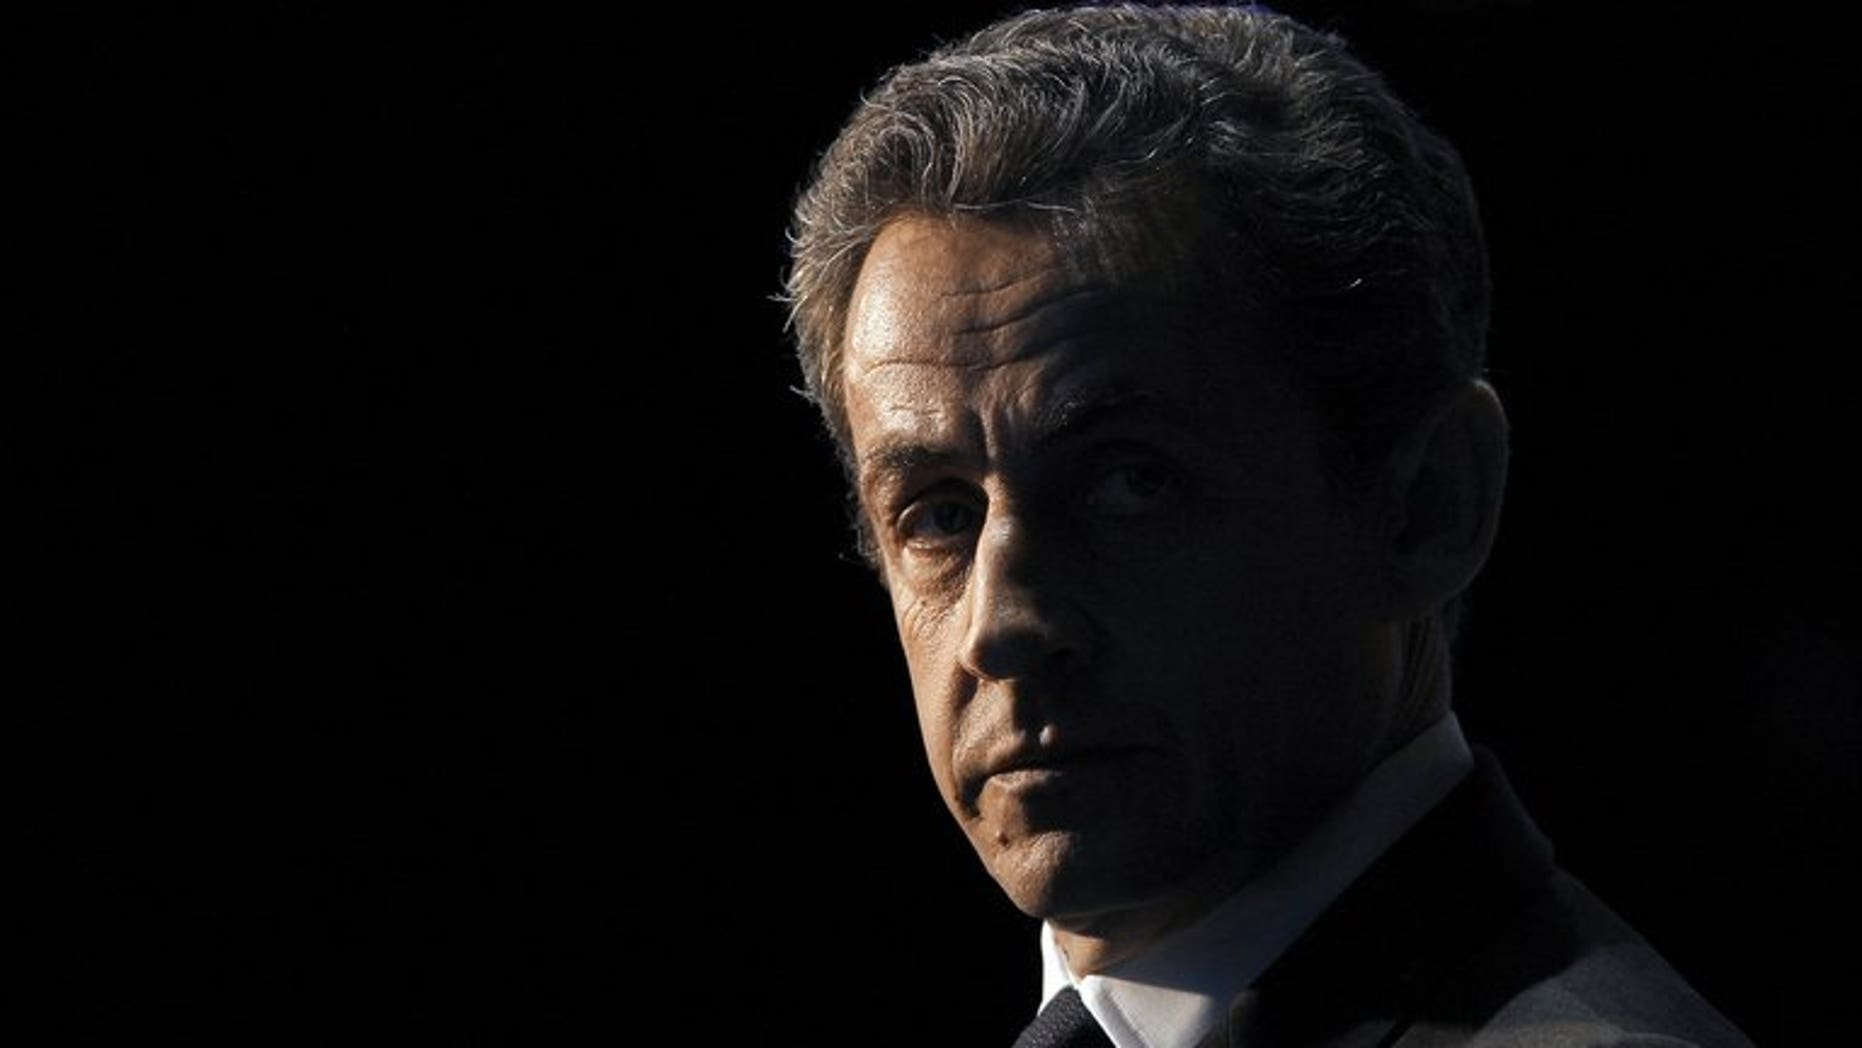 France???s then-president Nicolas Sarkozy waits to take part in a TV show in Paris on April 10, 2012. Sarkozy made a dramatic return to the French political scene on Friday, slamming a decision to deny his right-wing UMP party millions of euros in campaign reimbursements and issuing a call to arms to his supporters.